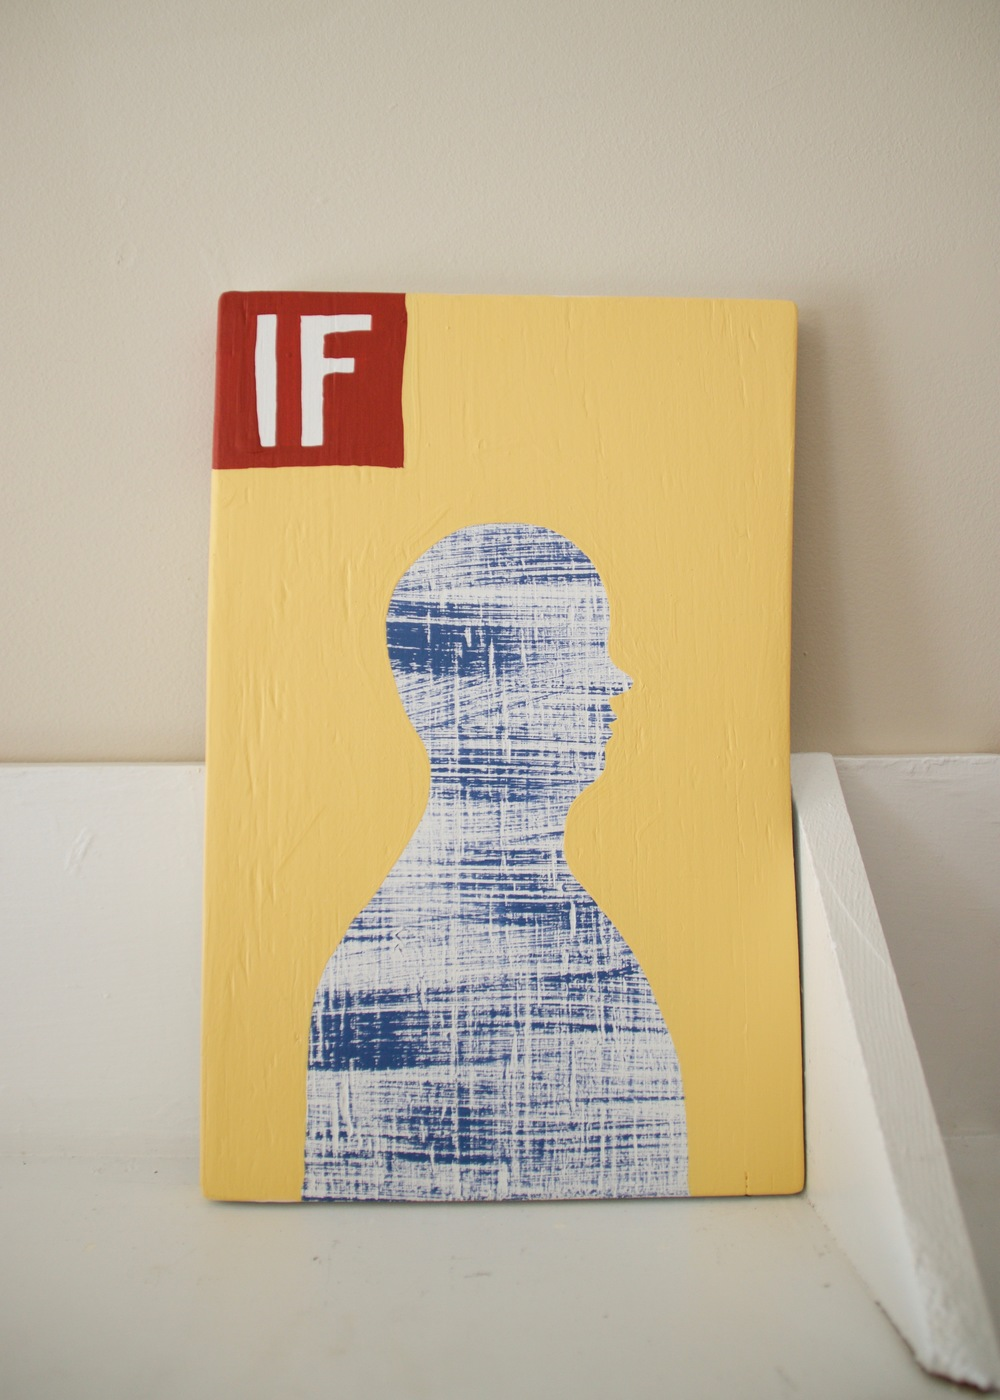 If Magazine , 2016                      acrylic, wood | 13 ¼ x 8 ¾ in.